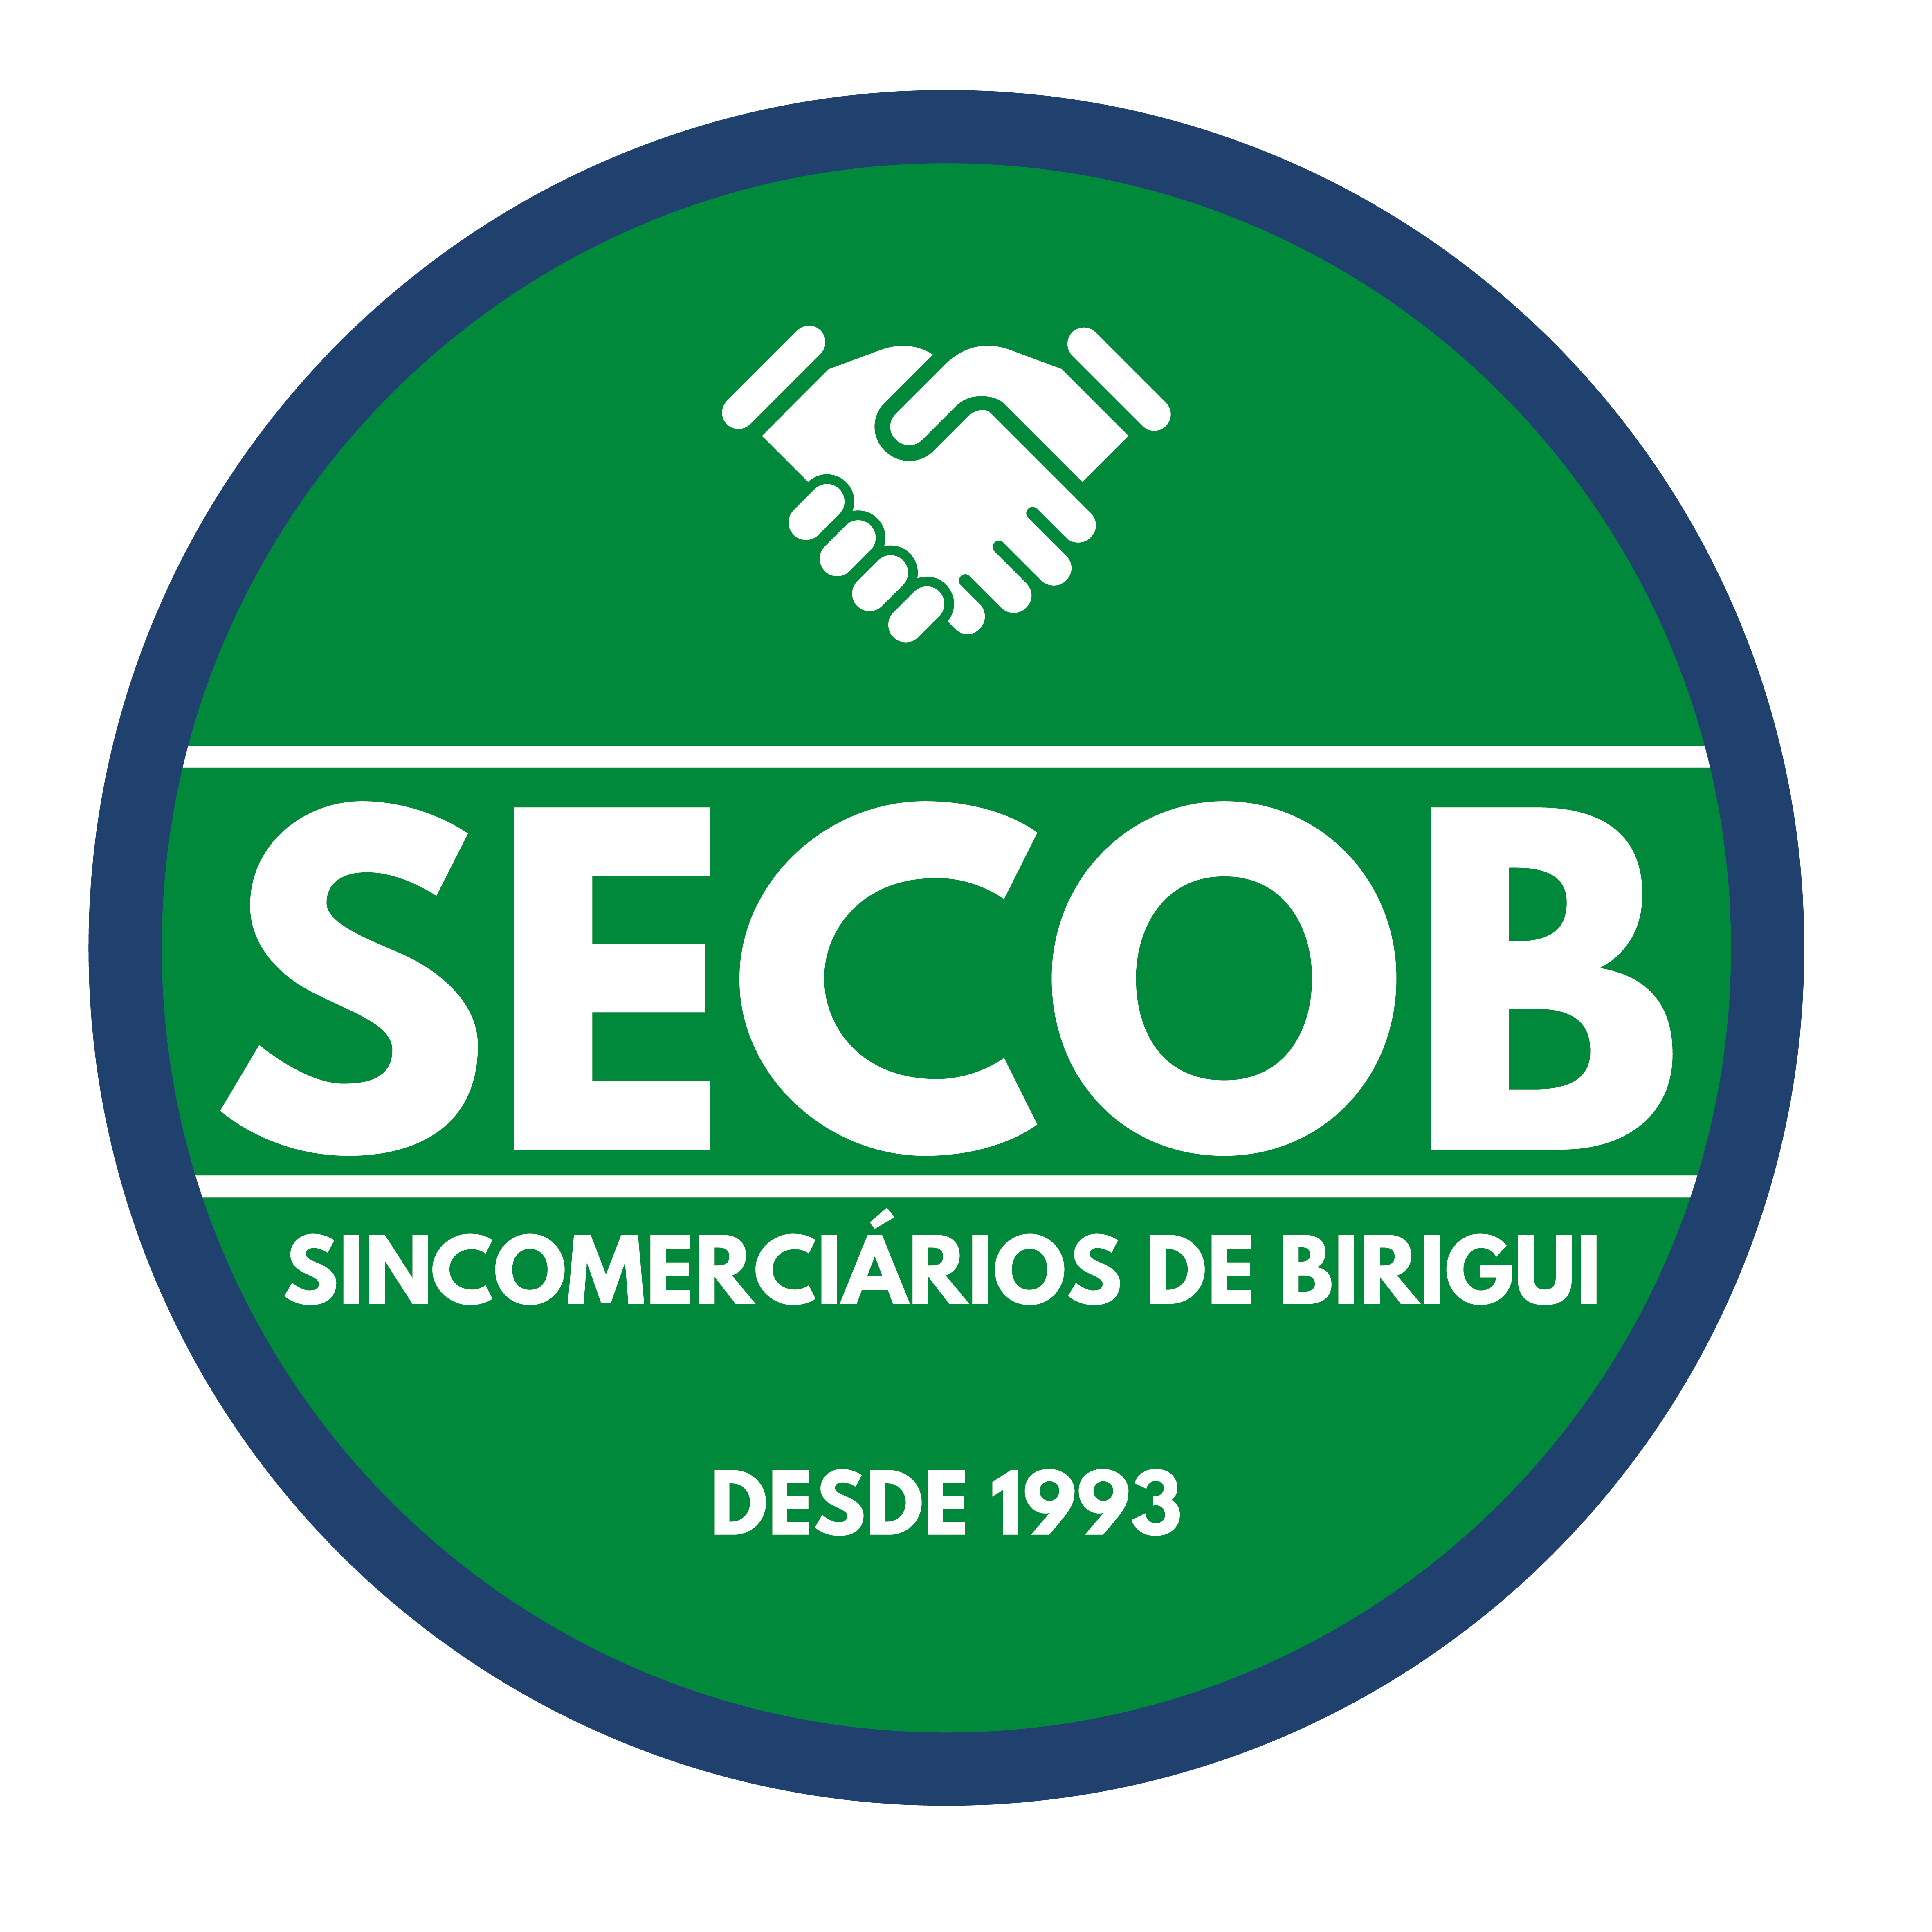 http://secob.org.br/